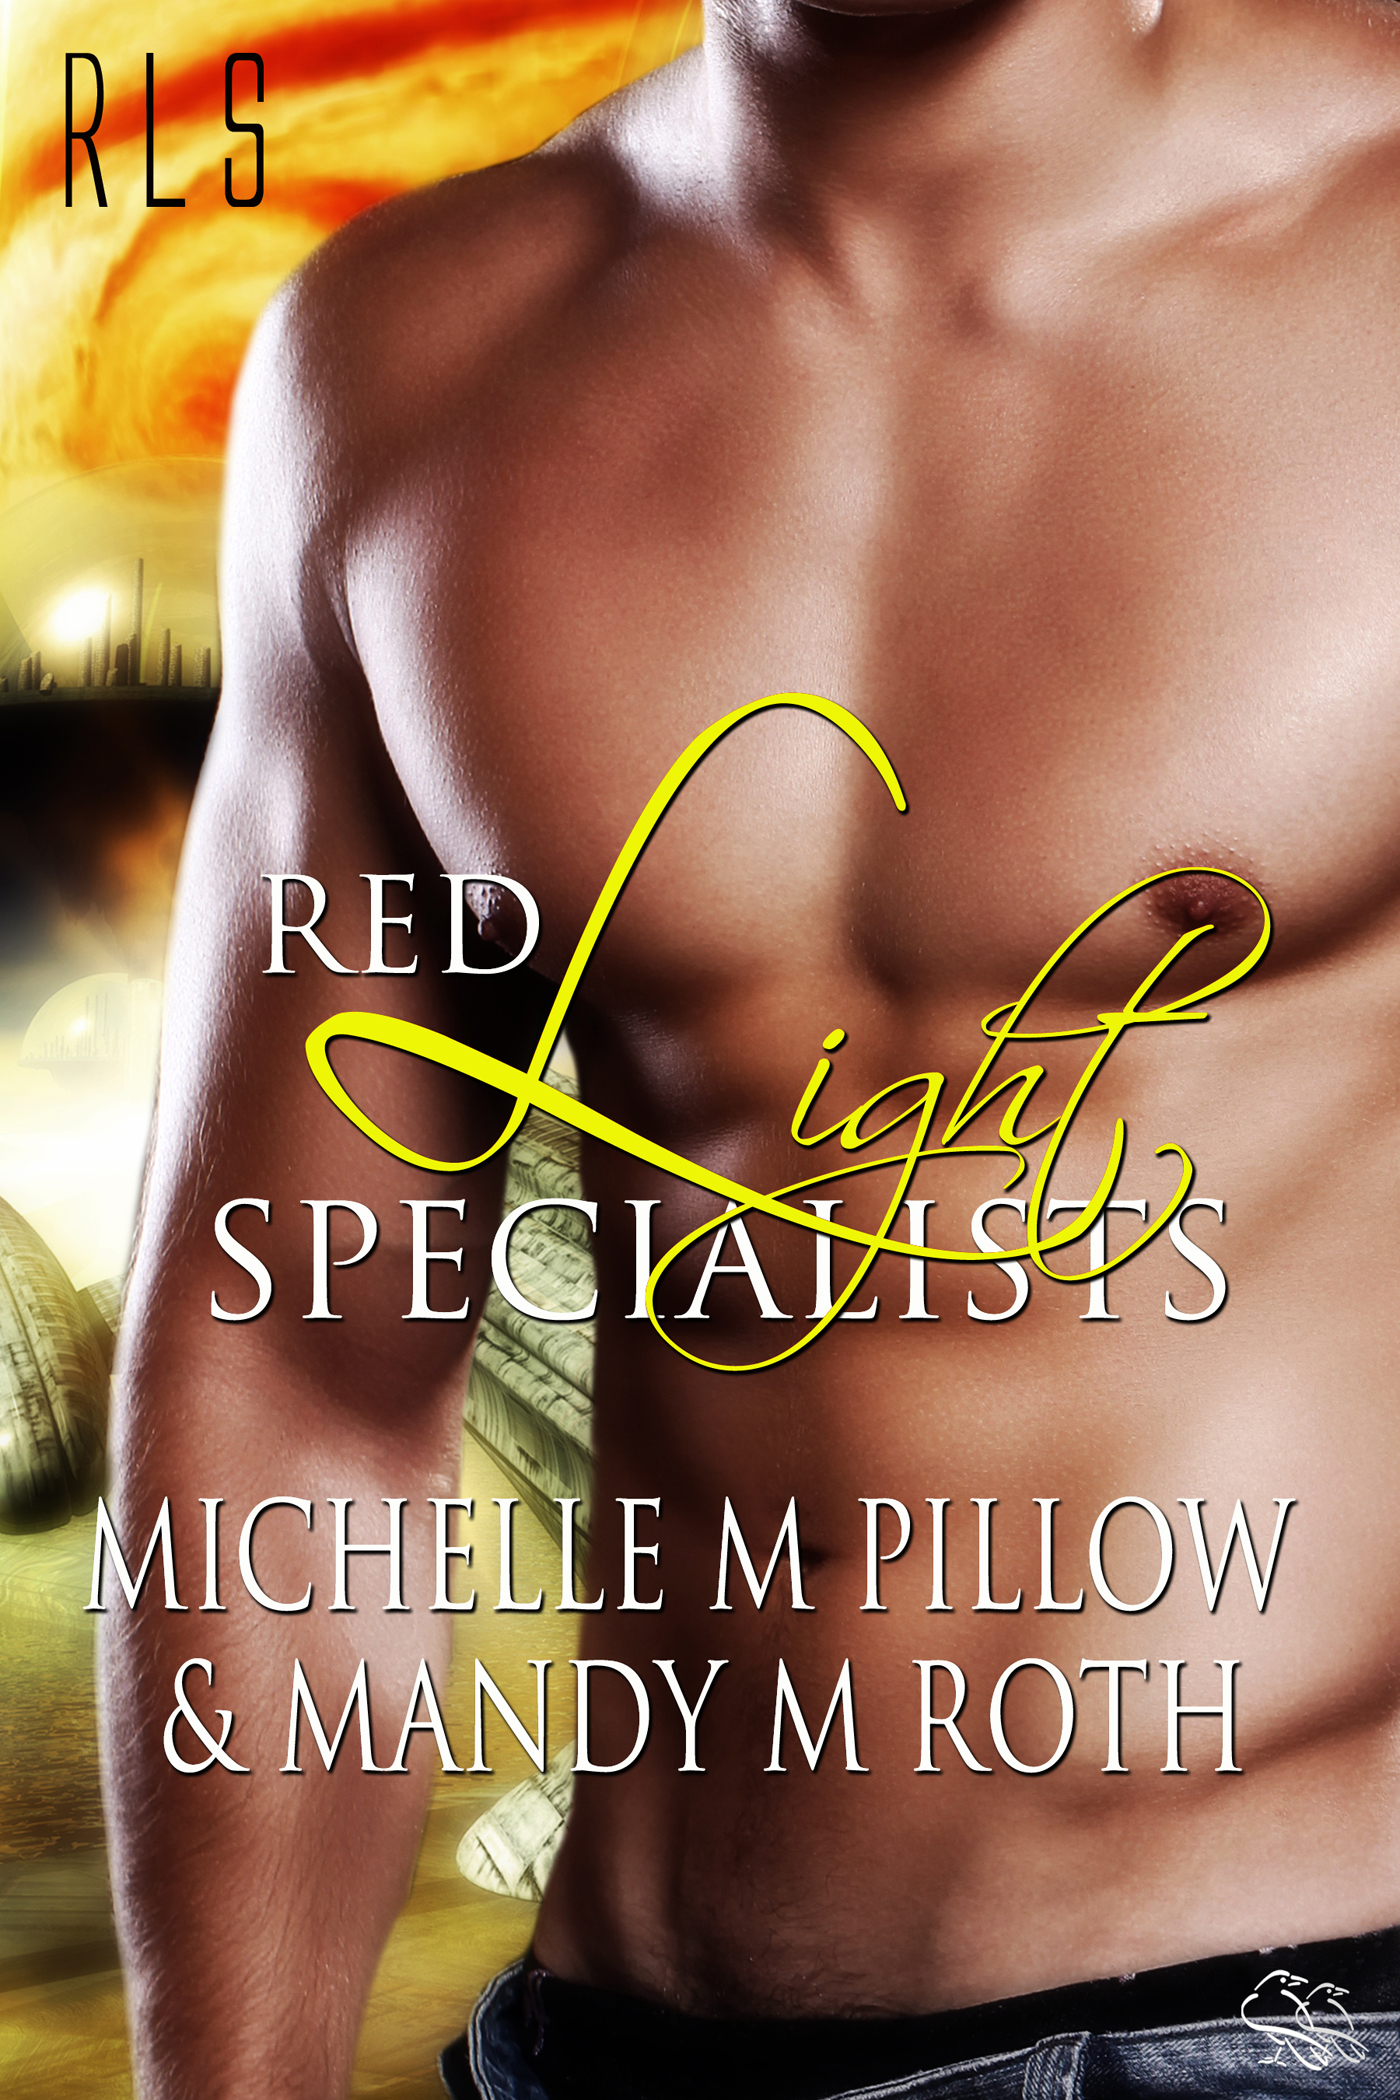 Michelle M. Pillow  Mandy M. Roth - Red Light Specialists